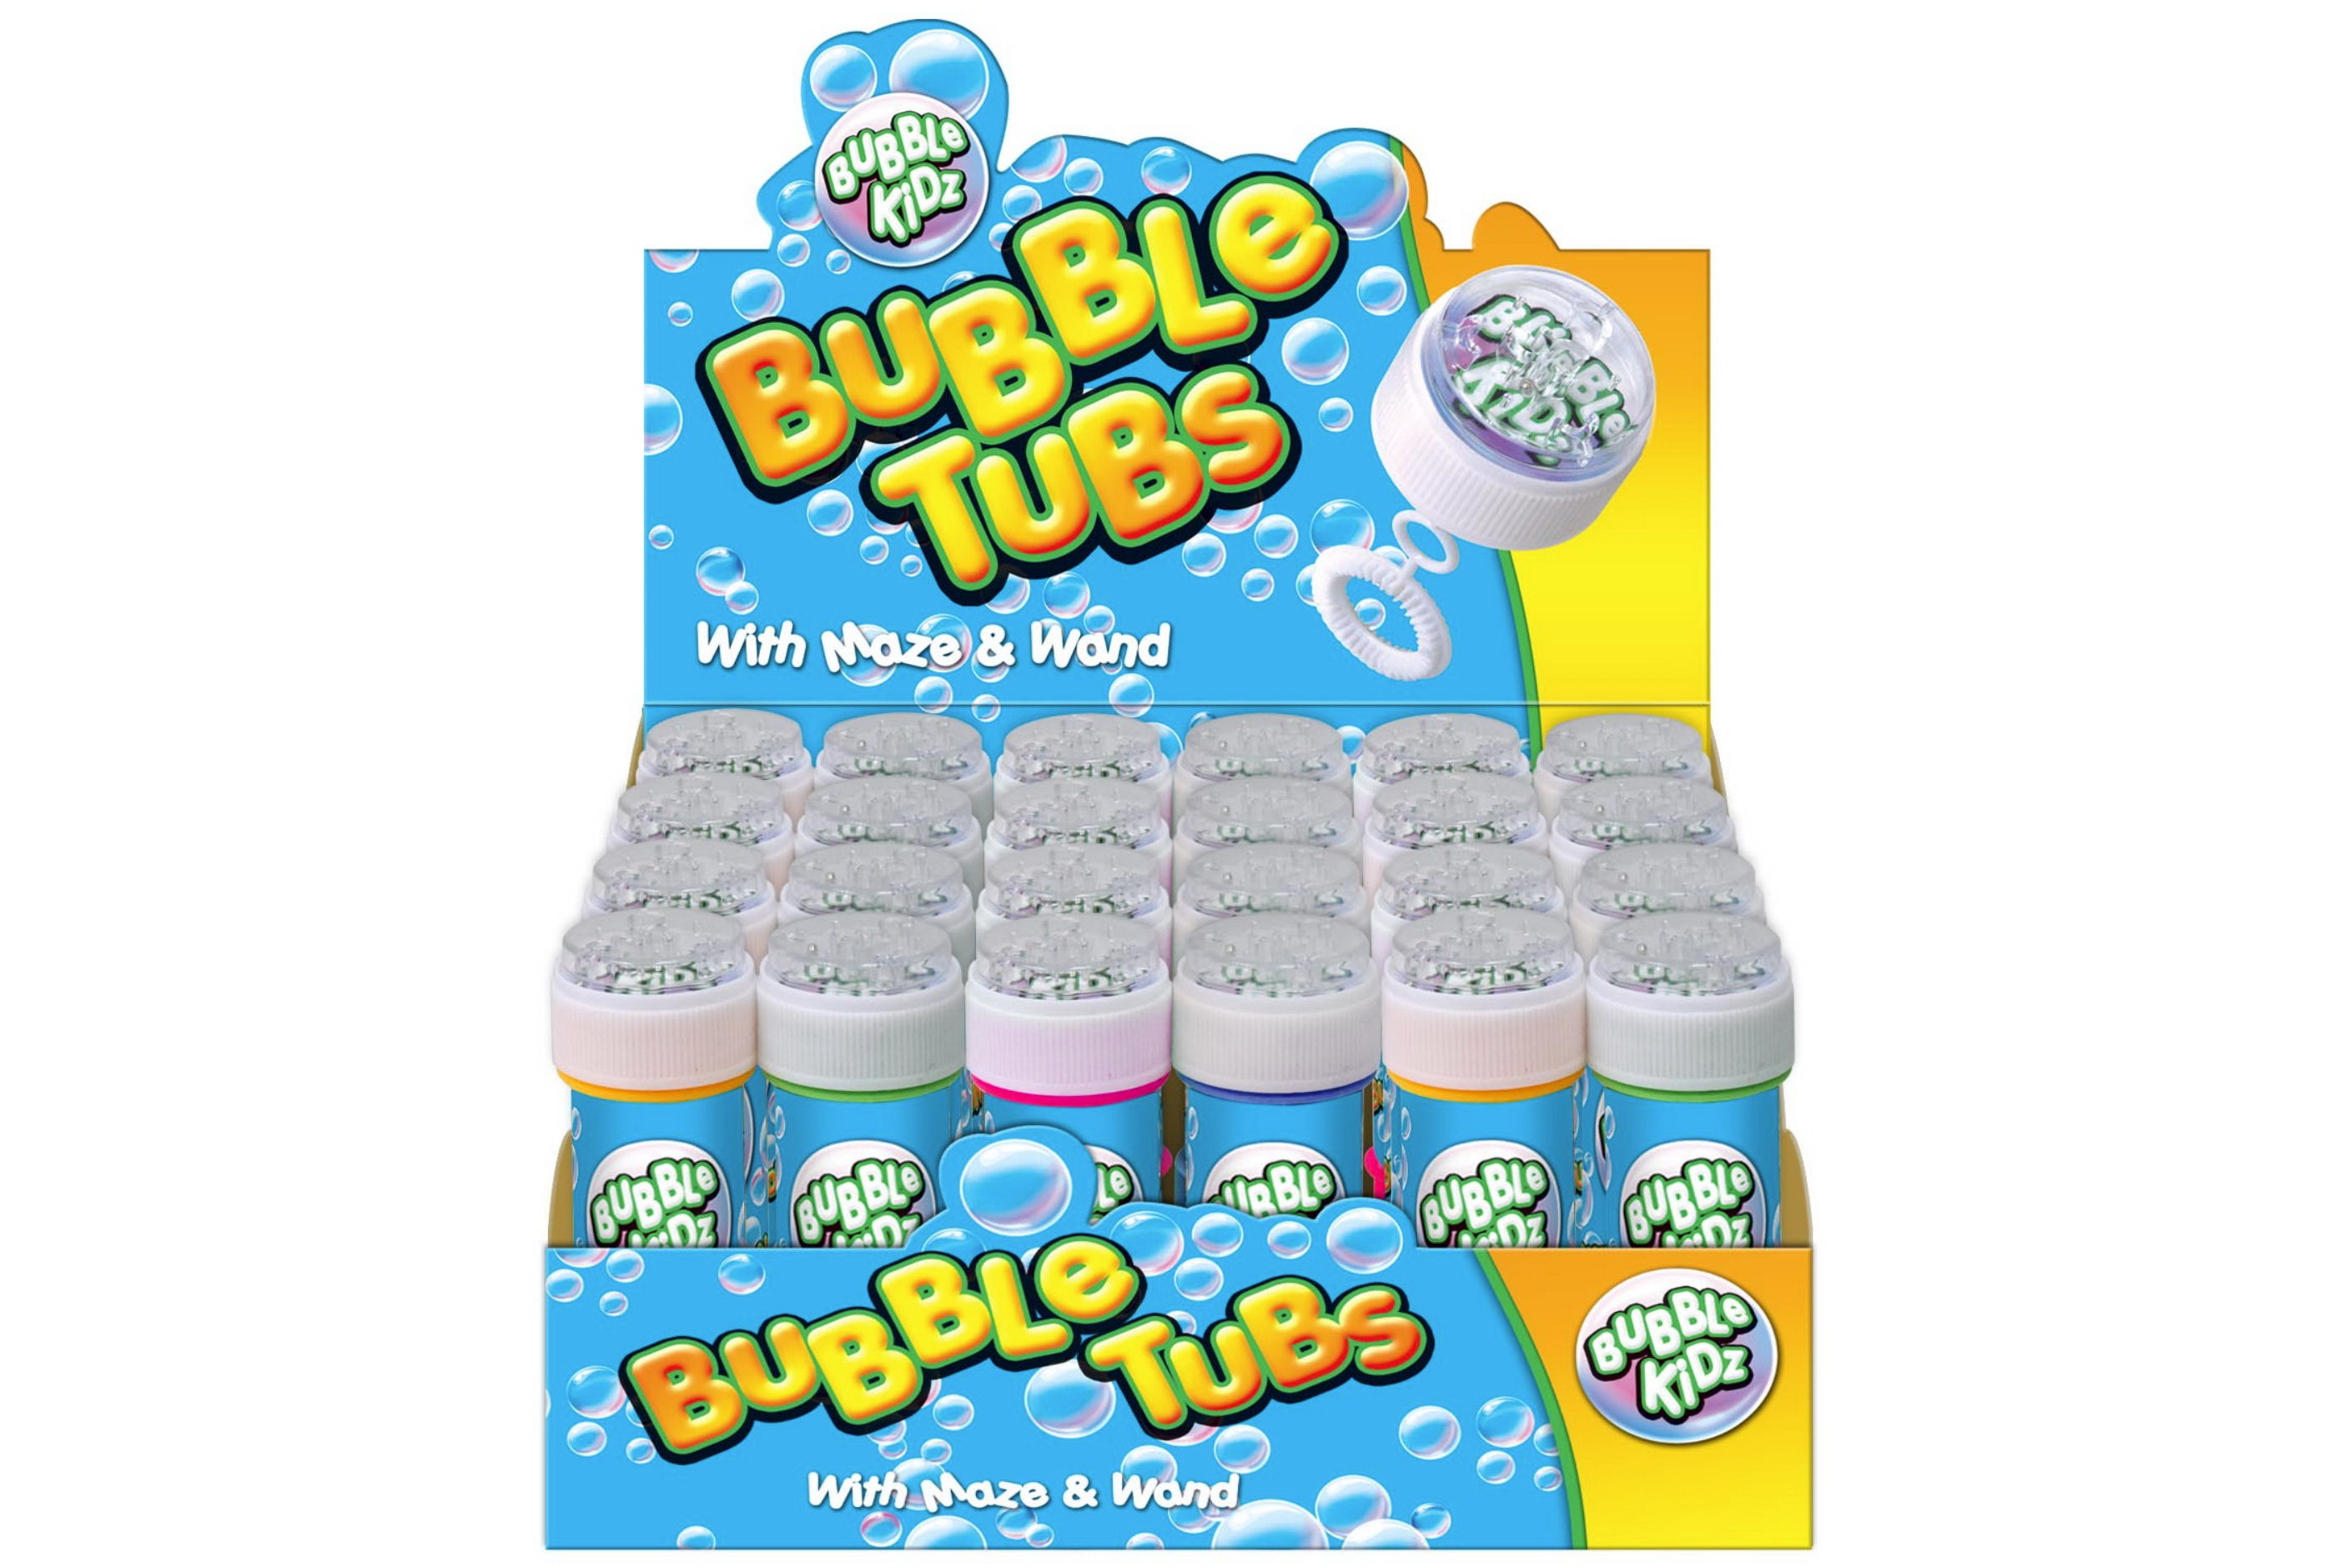 60ml Bubble Tub With Maze Lid & Wand In Display Box | Products ...